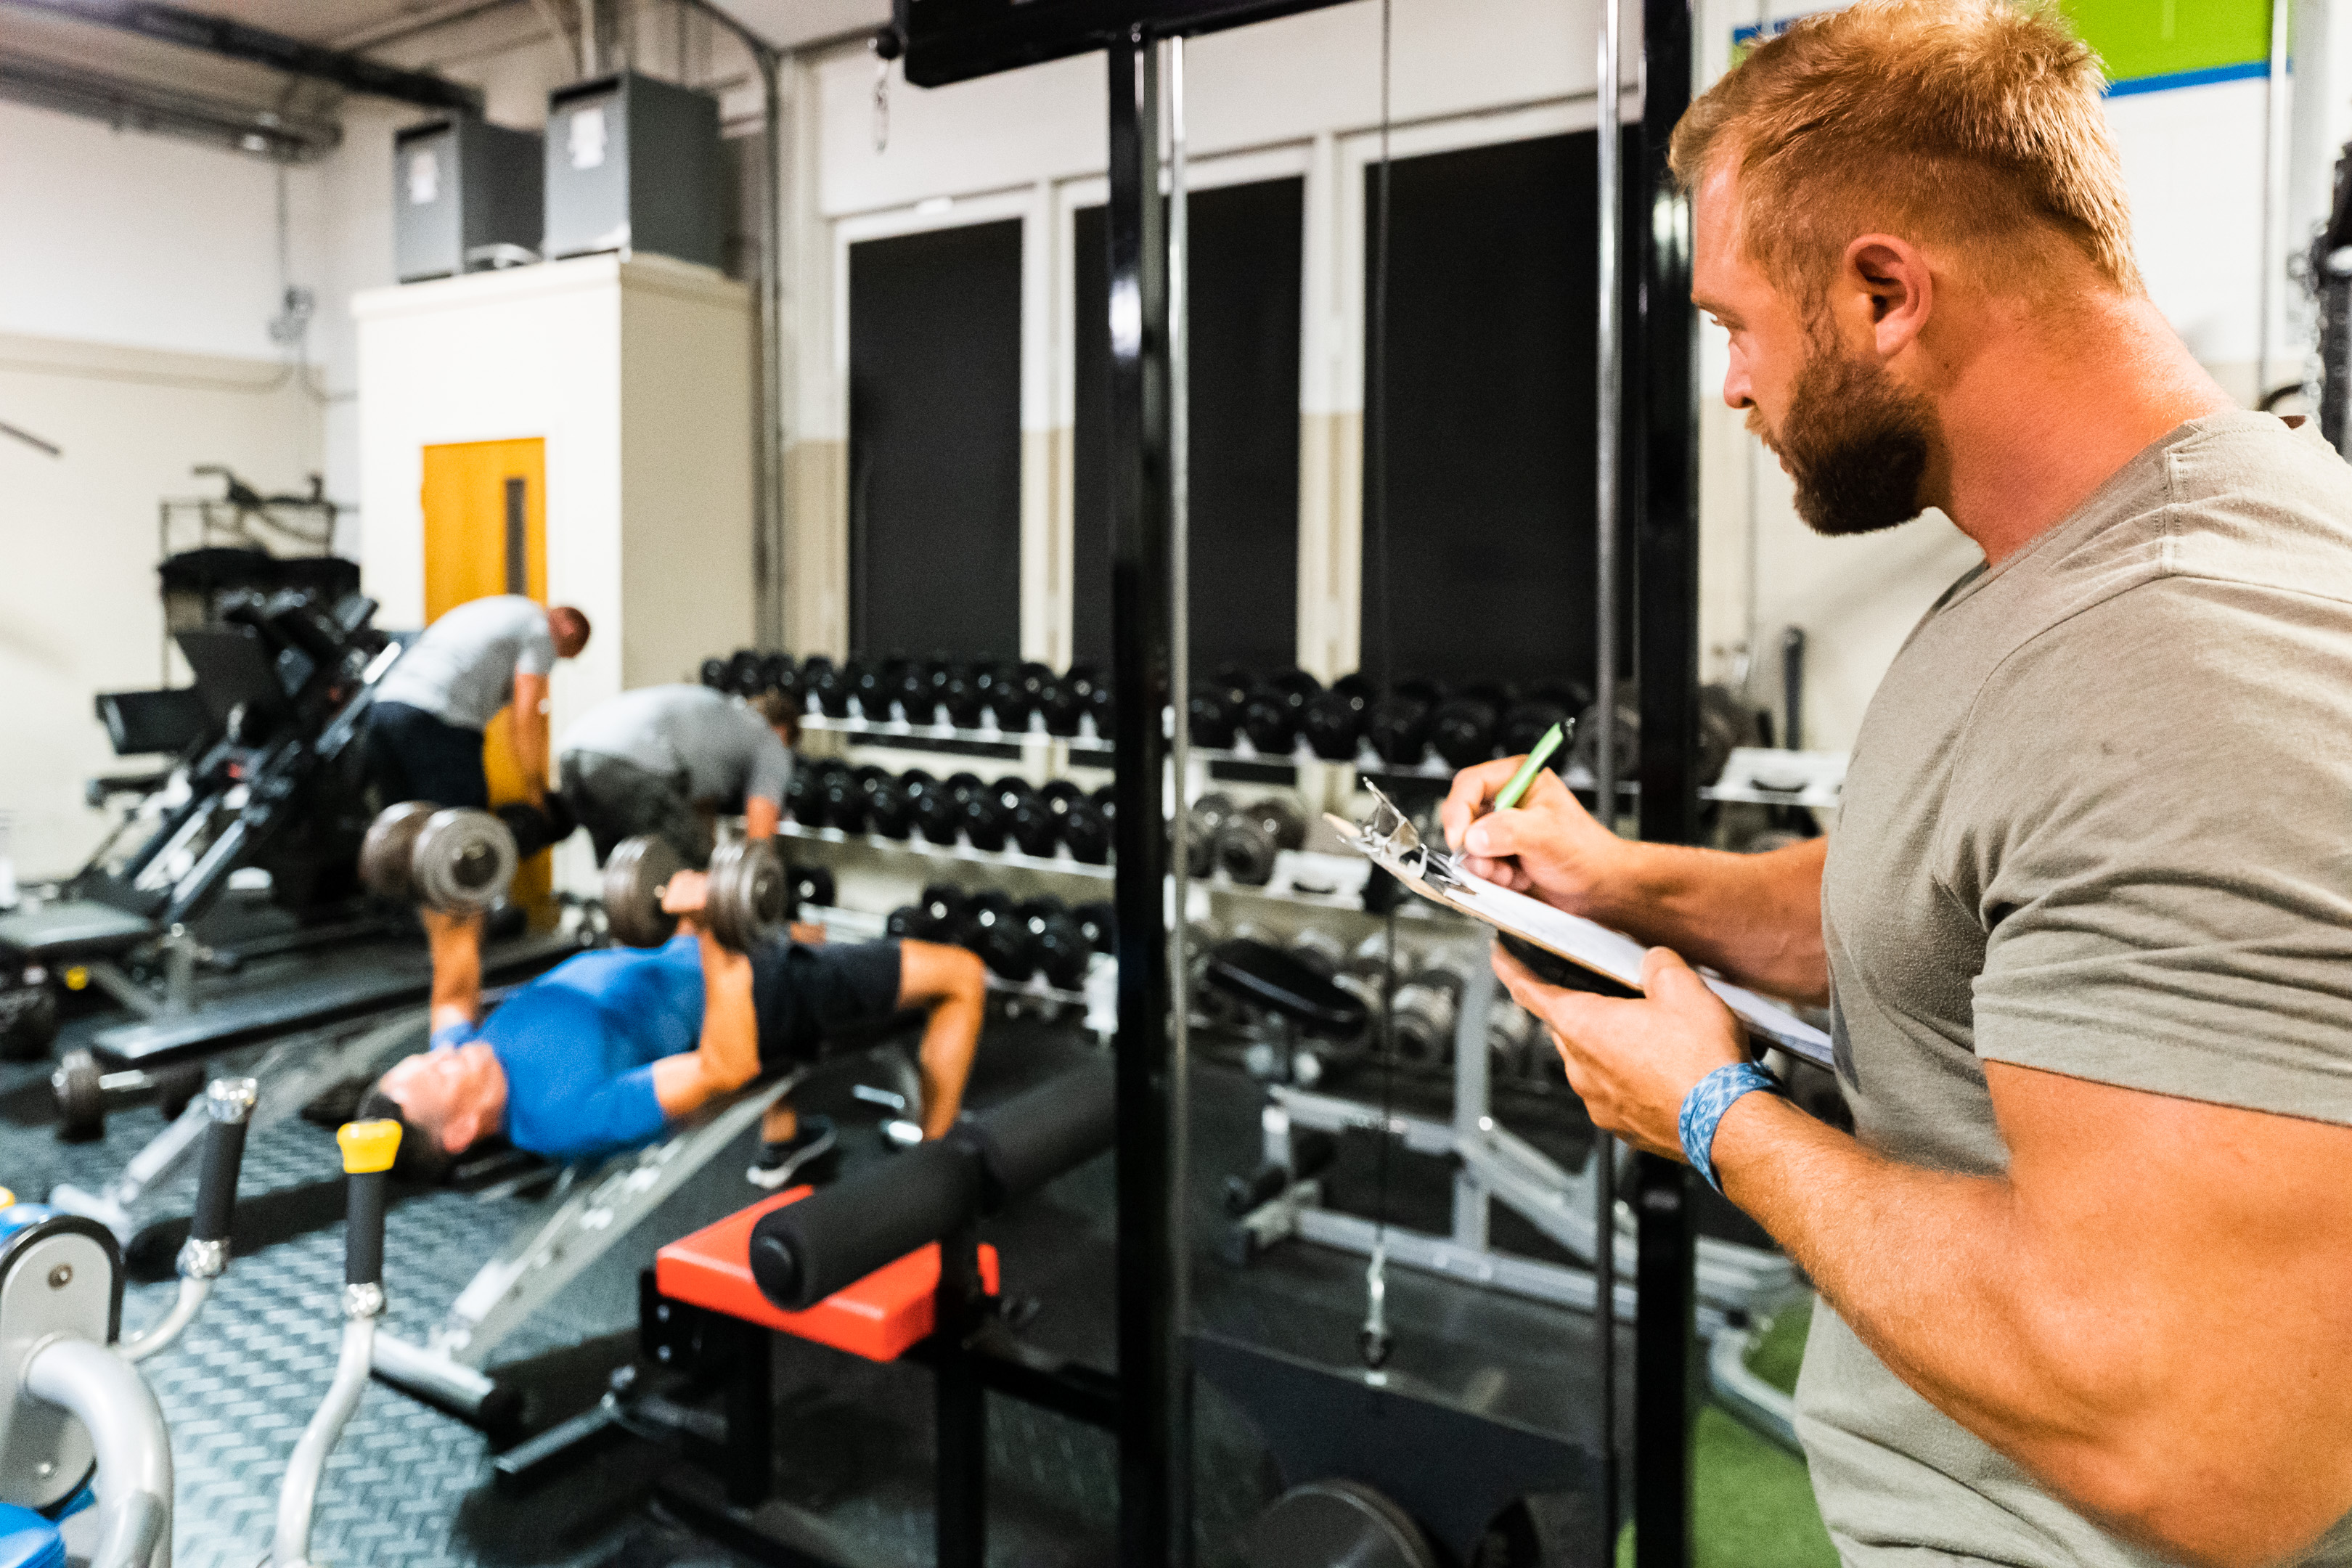 Customer workout plan at Prevail Grand Rapids personal training and gym located in Ada, Michigan.